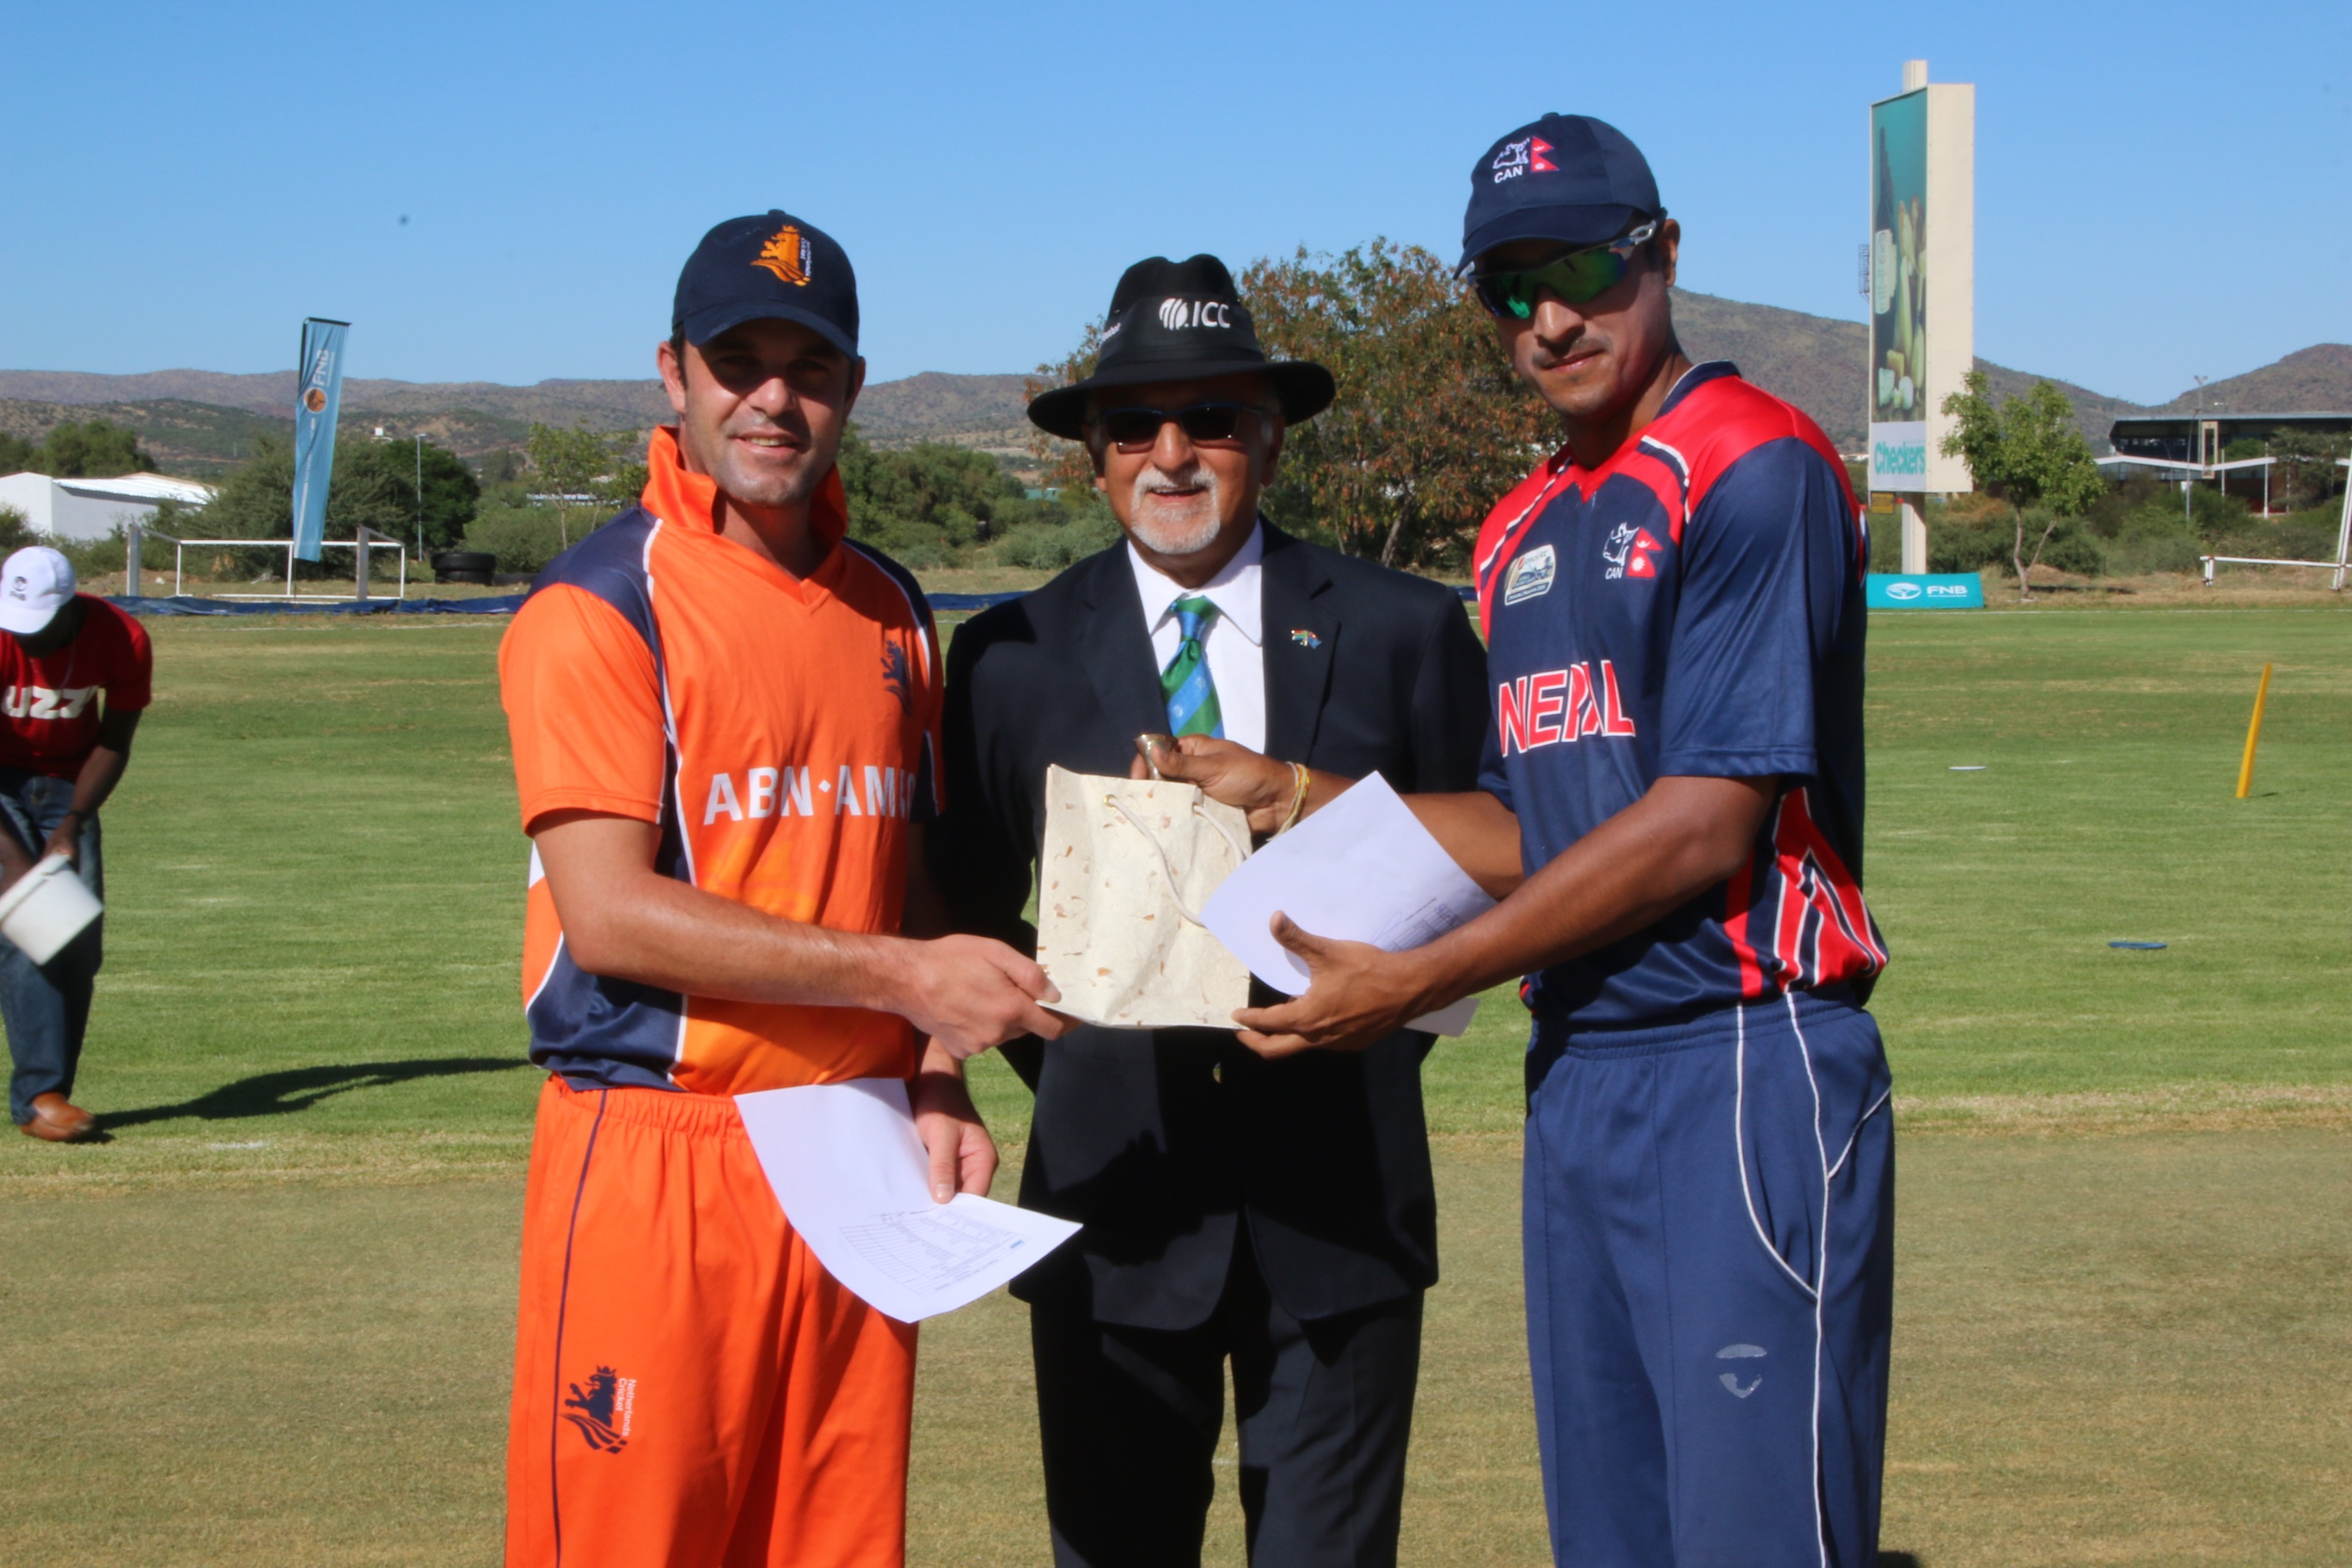 Netherland Vs Nepal 2nd t20 match